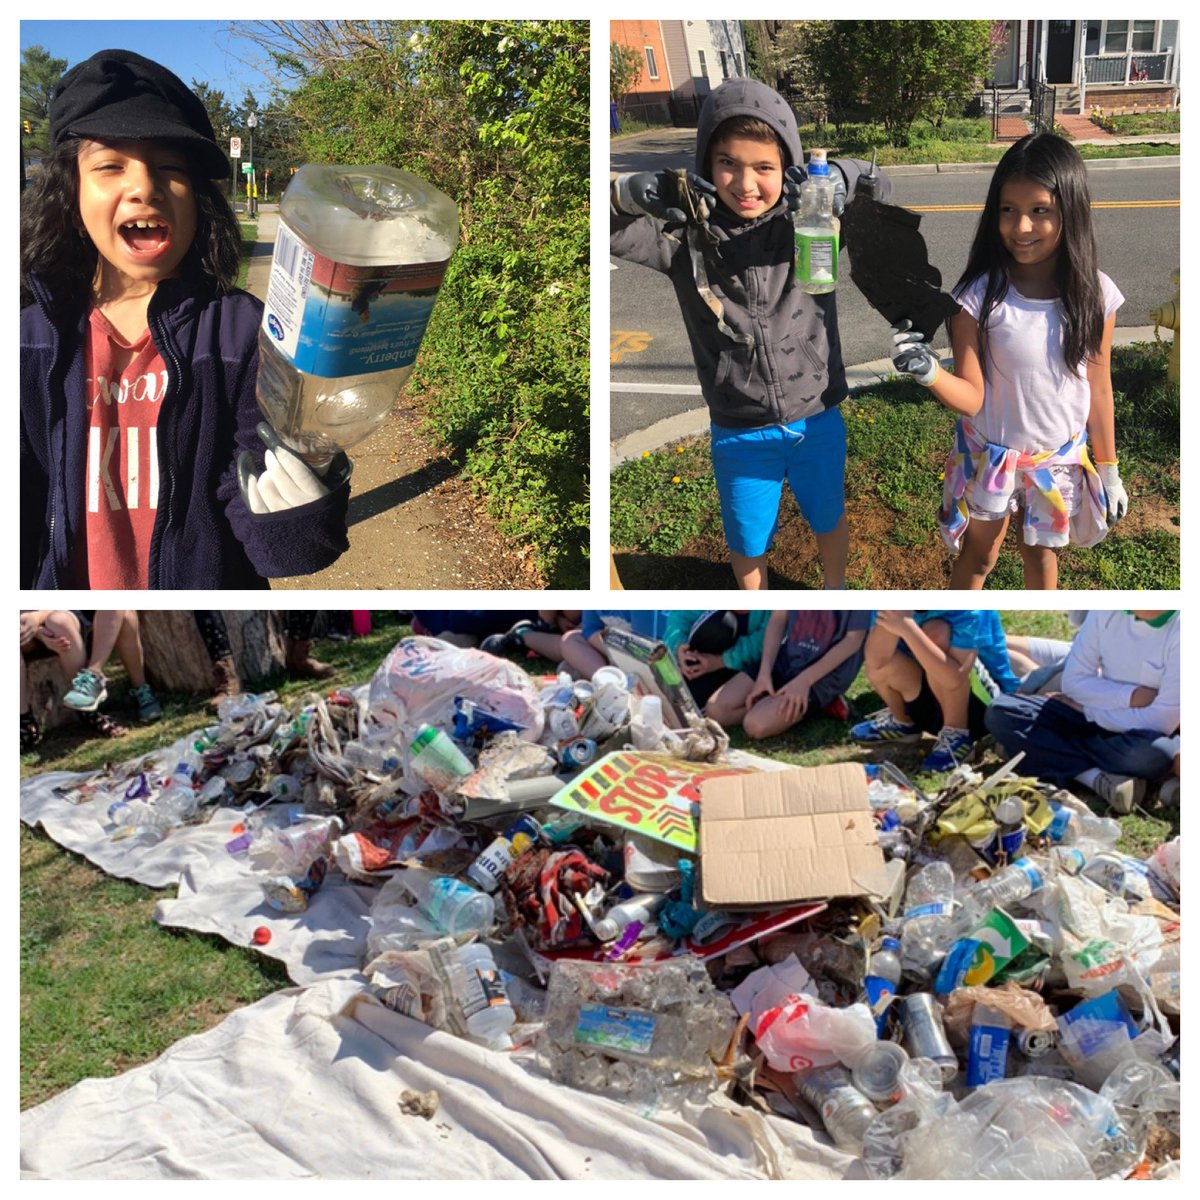 Today we conducted our field work by picking up trash in our community. What would these artifacts say about our civilization to generations of the future? <a target='_blank' href='http://twitter.com/CampbellAPS'>@CampbellAPS</a> <a target='_blank' href='http://twitter.com/ELeducation'>@ELeducation</a> <a target='_blank' href='https://t.co/ua4PWvkmlV'>https://t.co/ua4PWvkmlV</a>